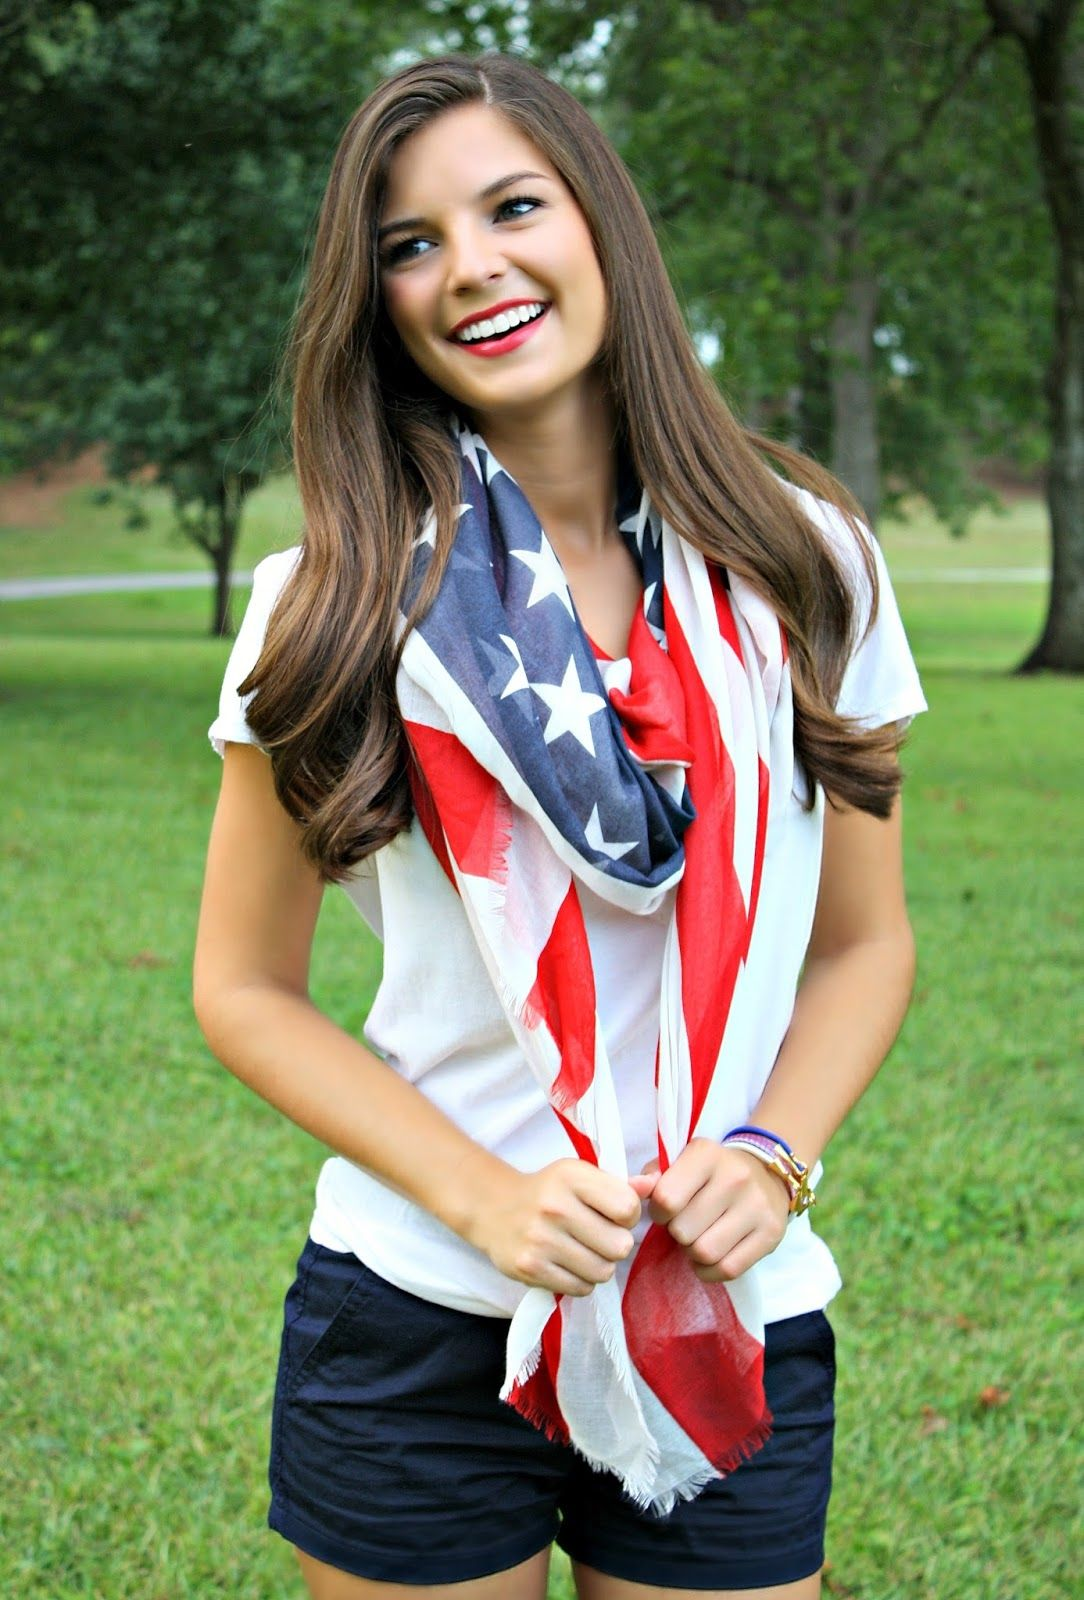 fbbeeaeef1b8cb Chasing Abigail Lee - Fourth of July Outfit Inspiration. American flag  scarf. Nautical. Summer outfit.